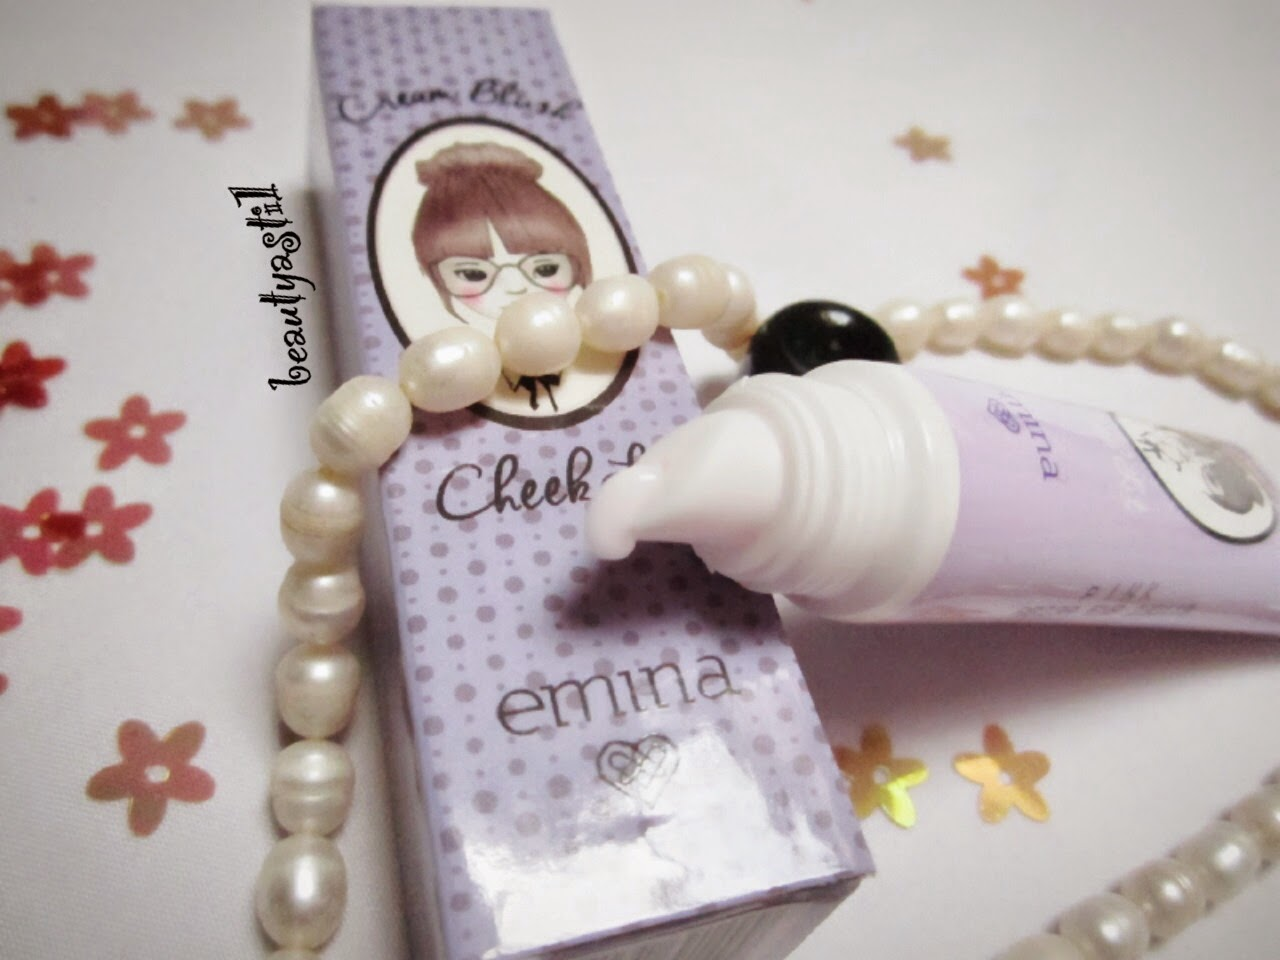 harga-emina-cosmetics-pink-cheek-lit-creamy-blush-on.jpg